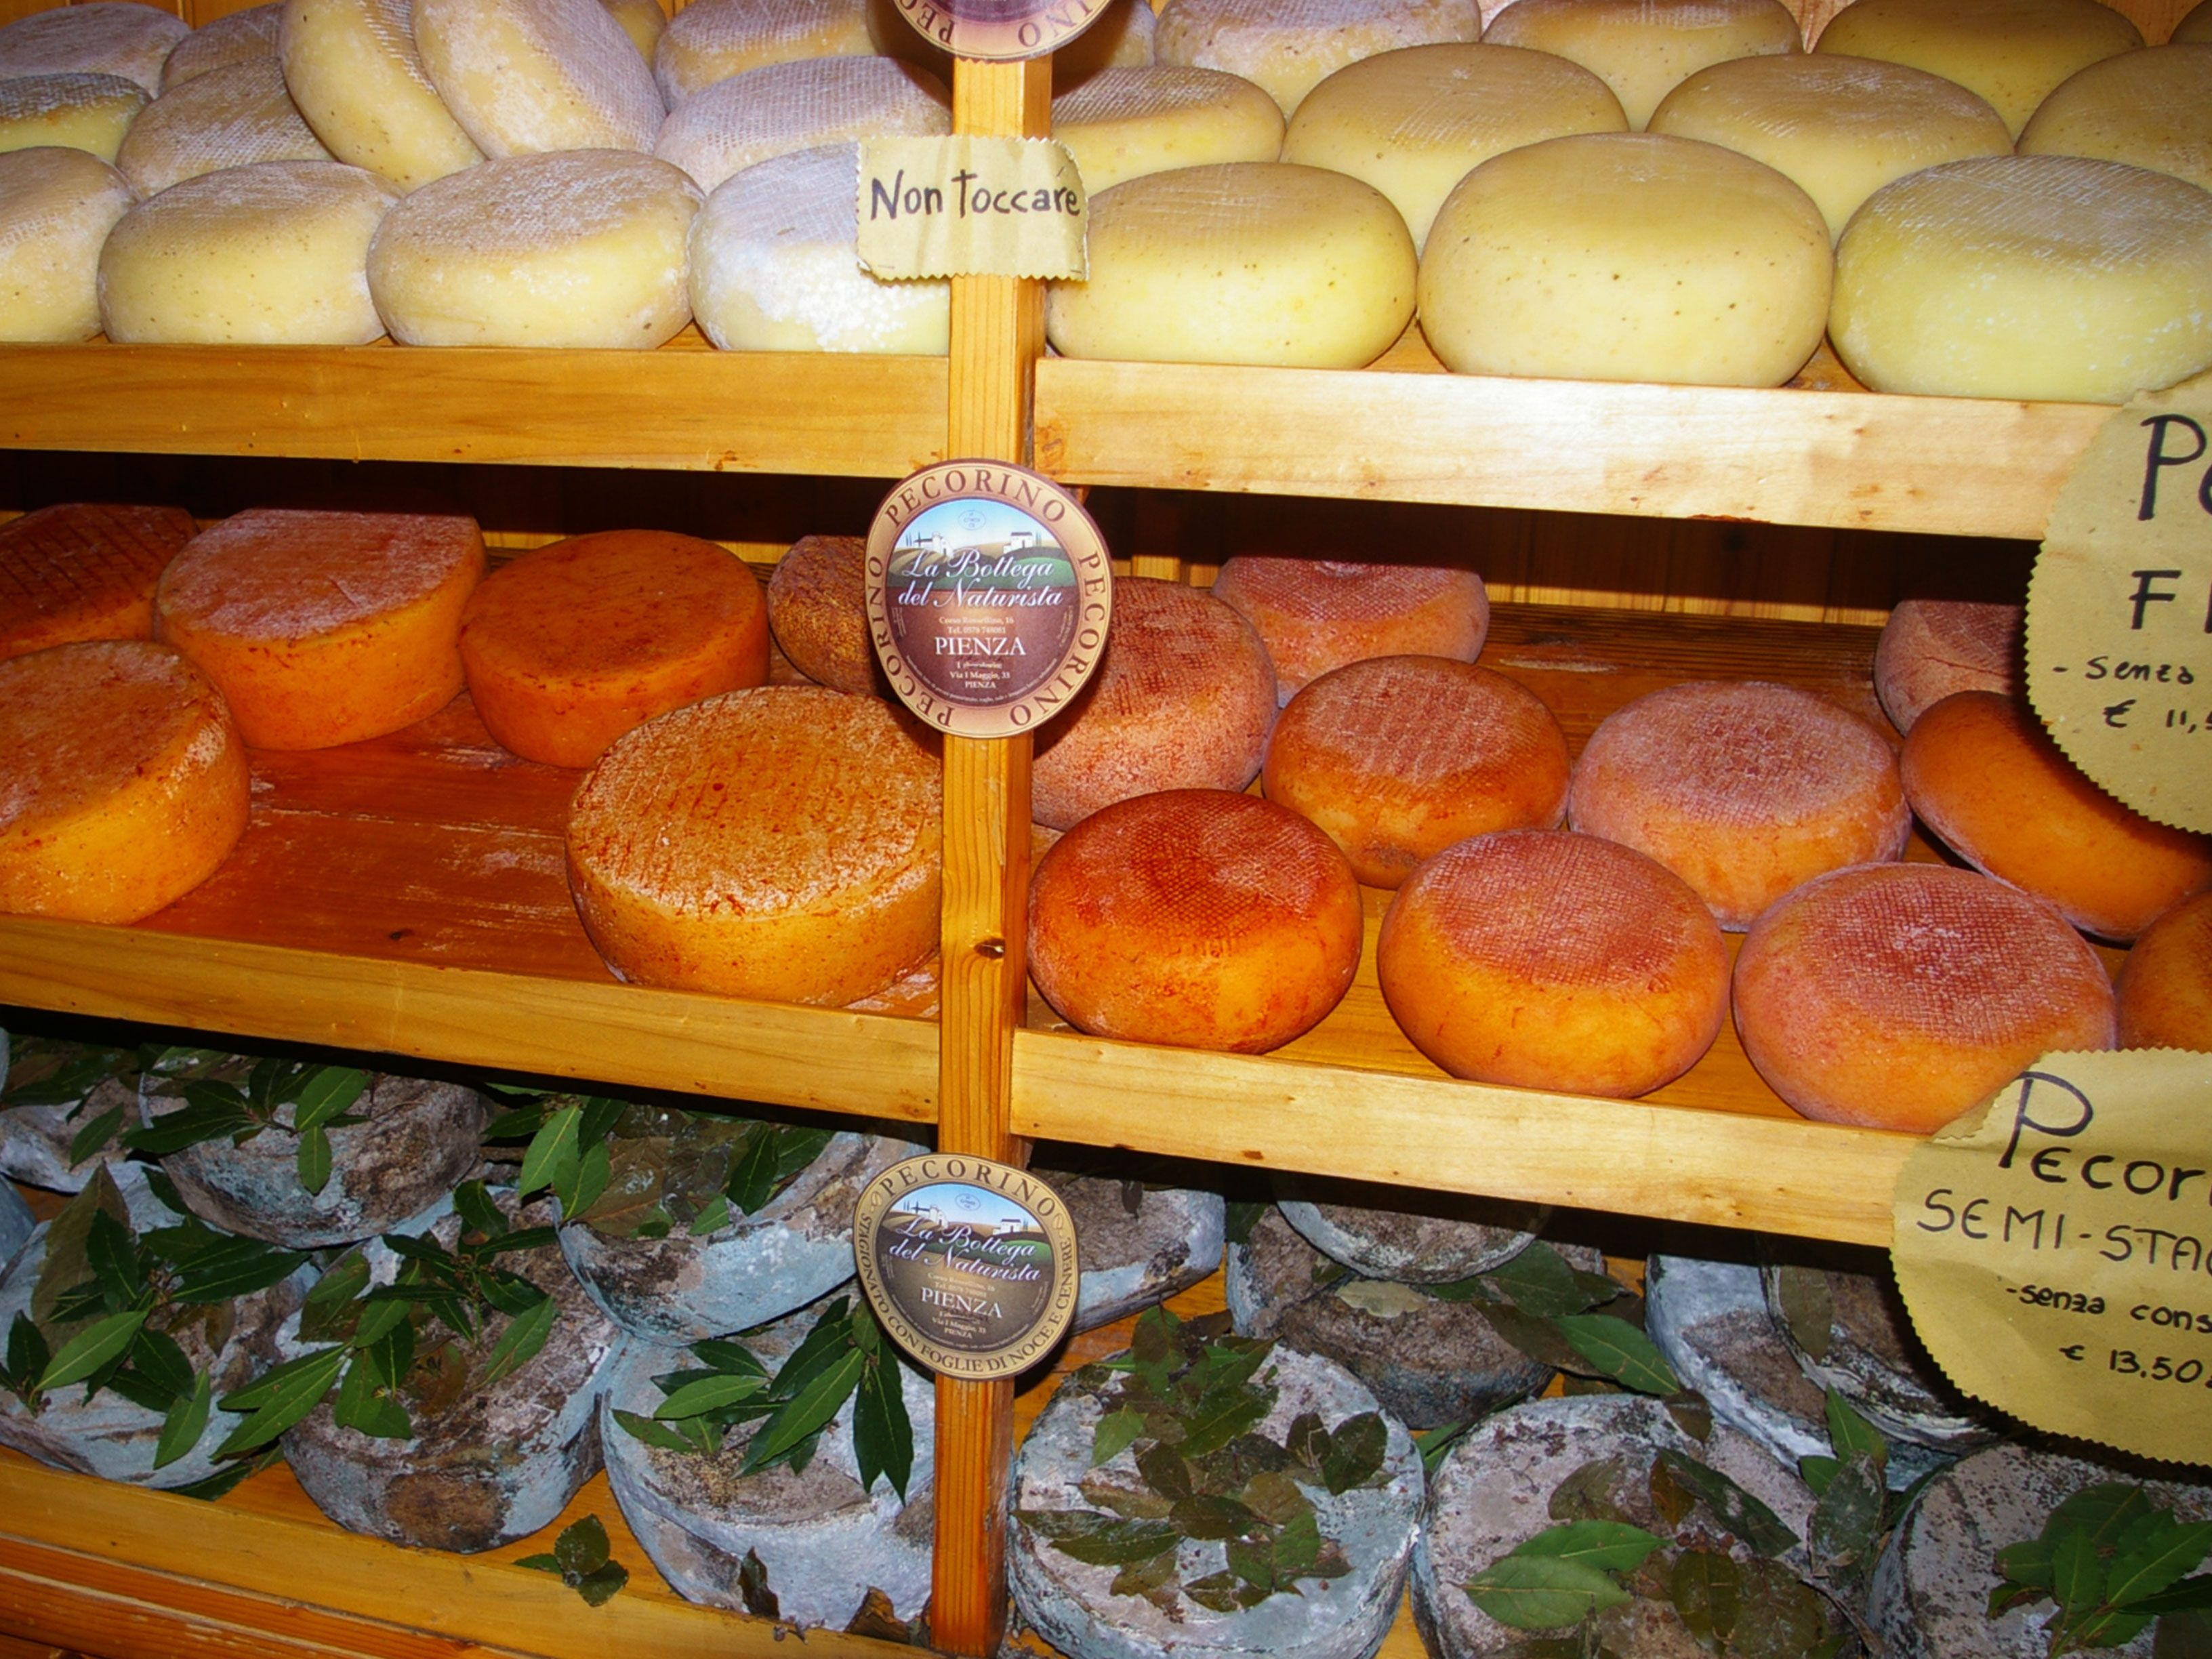 The famous and delicious pecorino cheese of Pienza